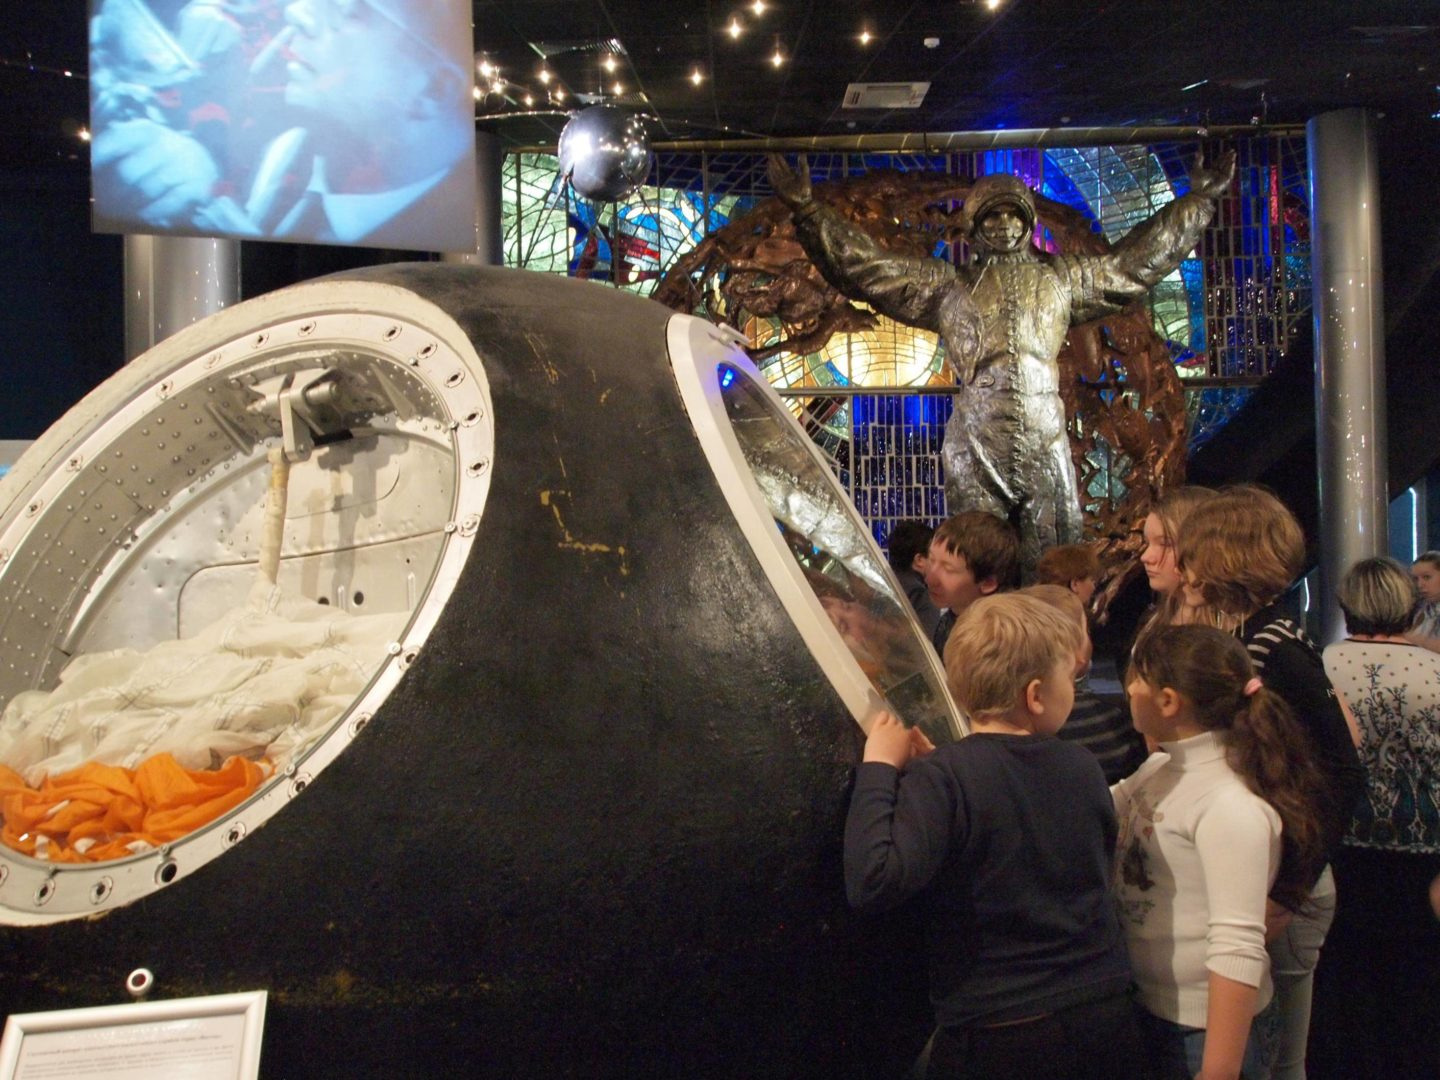 RUS-Moscow Space Exploration Memorial Museum 20130406 Russian kids introduced to space travel watching capsule